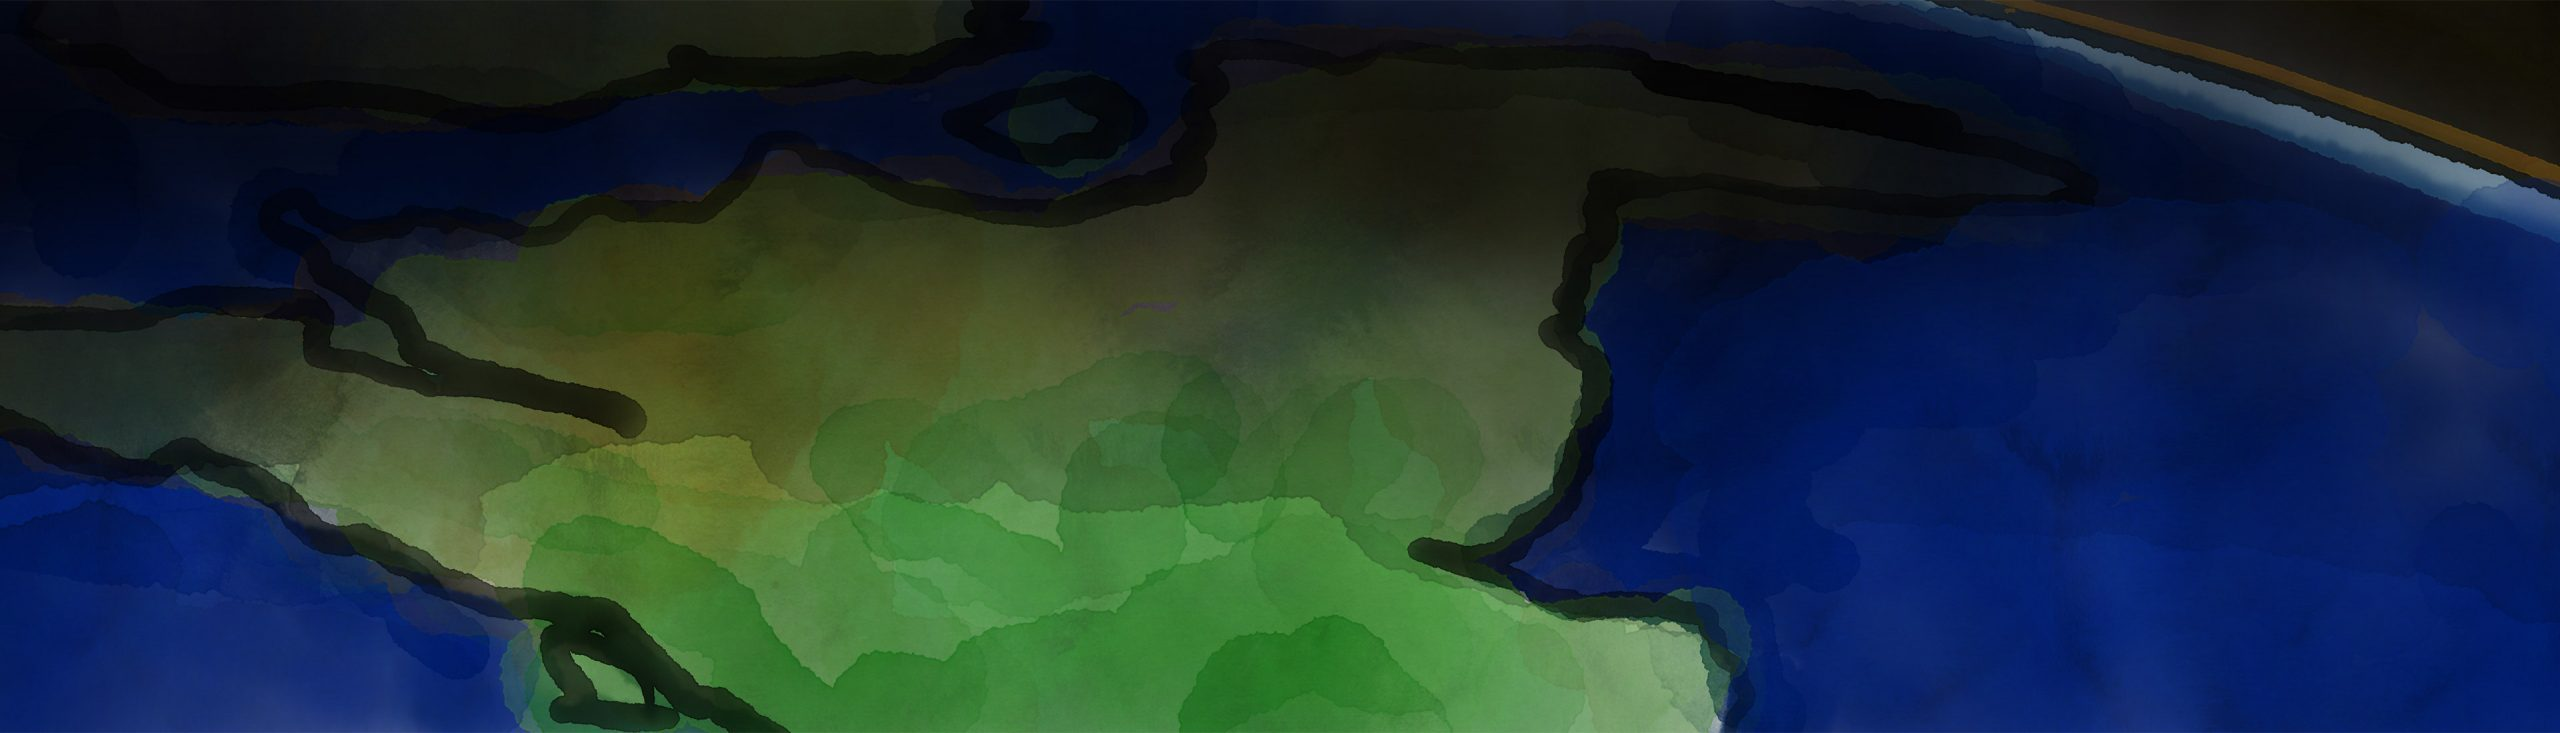 Water colour earth, blog header image